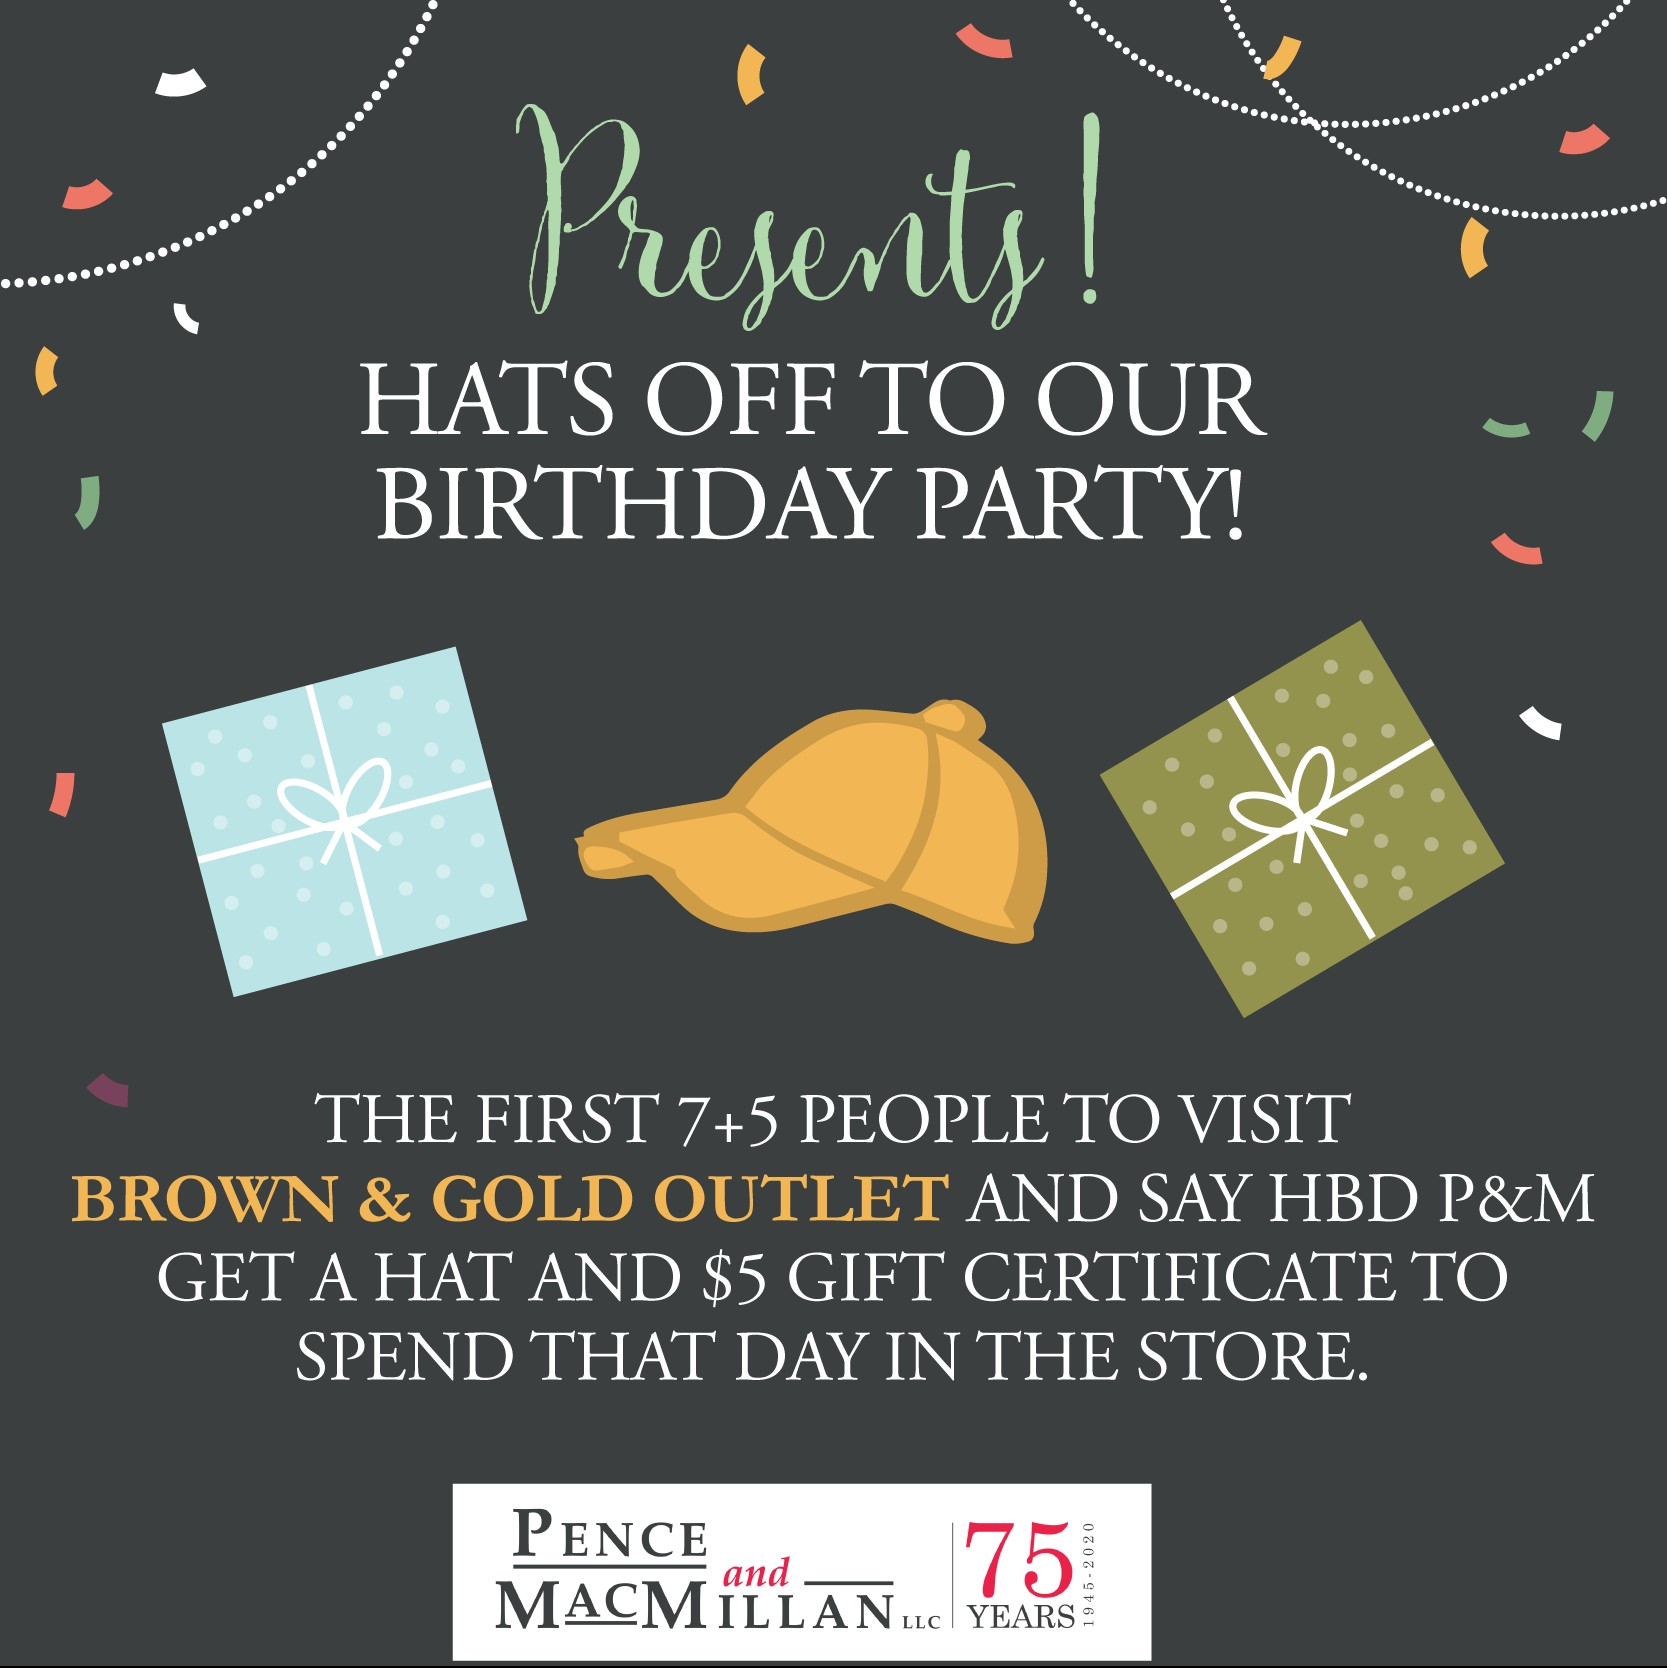 Presents! Hats off to our birthday party! The first 7+5 people to visit Brown & Gold Outlet and say HBD P&M get a hat and $5 gift certificate to spend that day in the store.